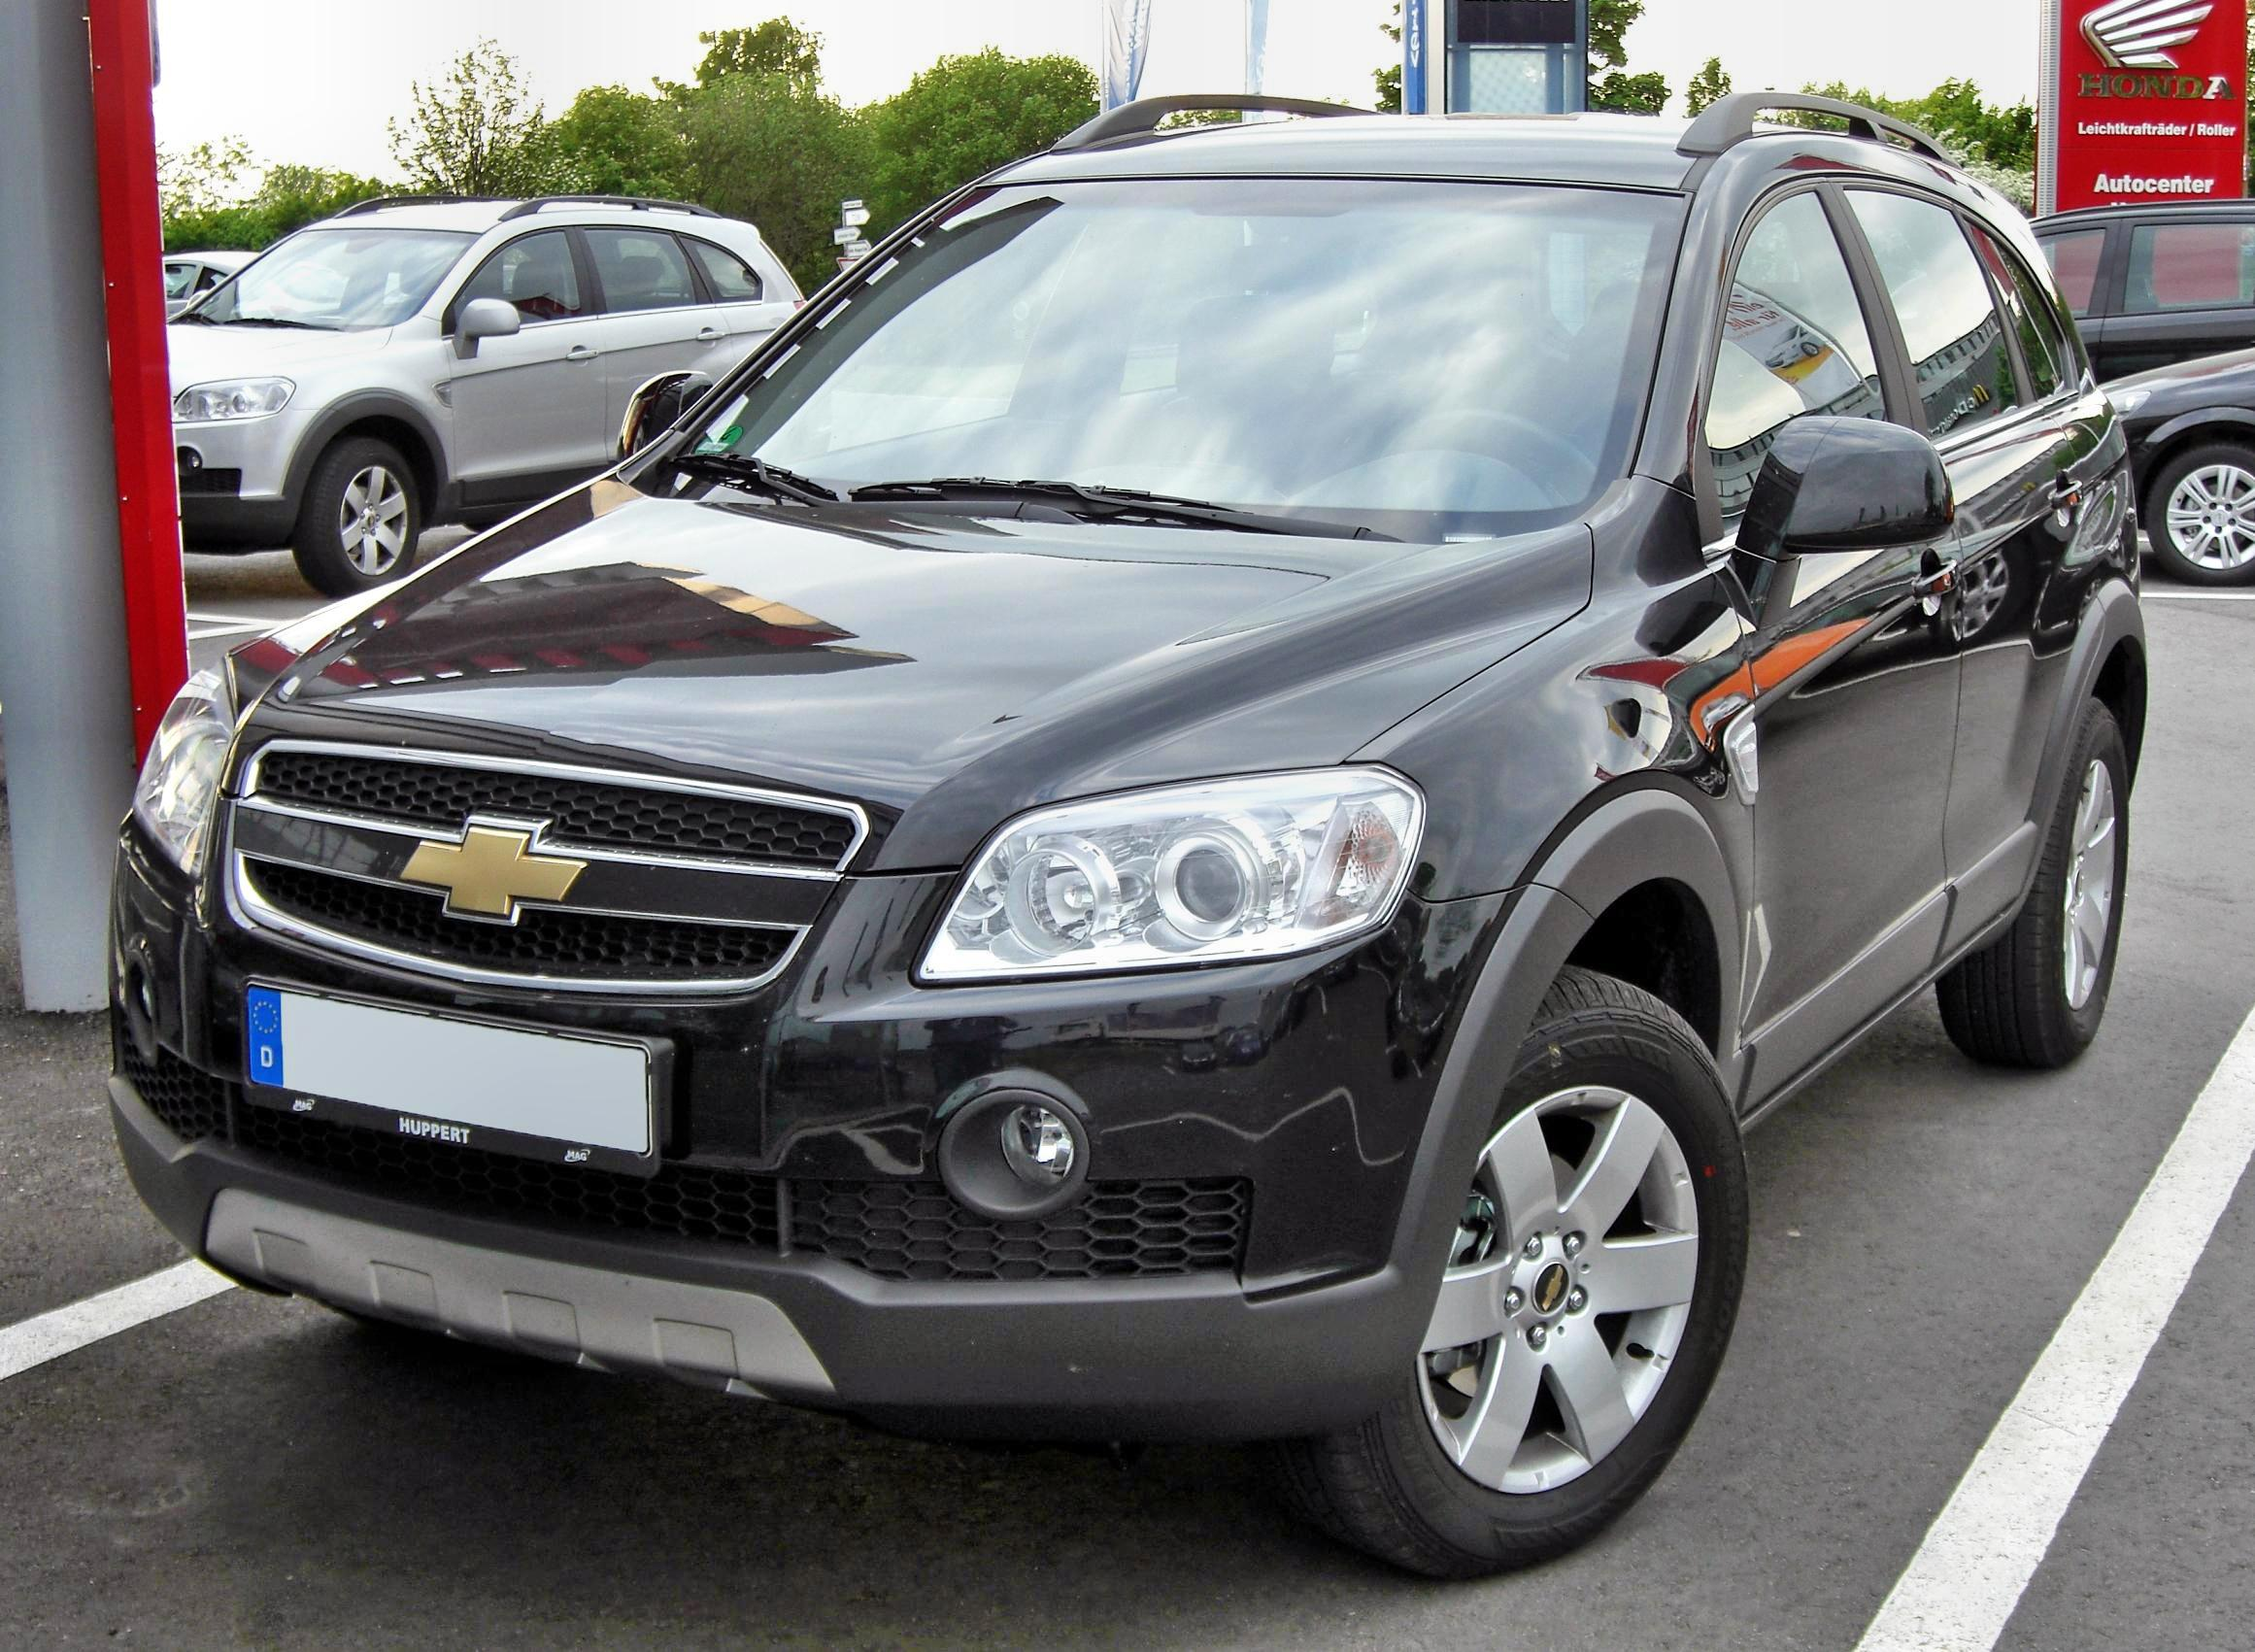 2009 Chevrolet Captiva   pictures, information and specs - Auto